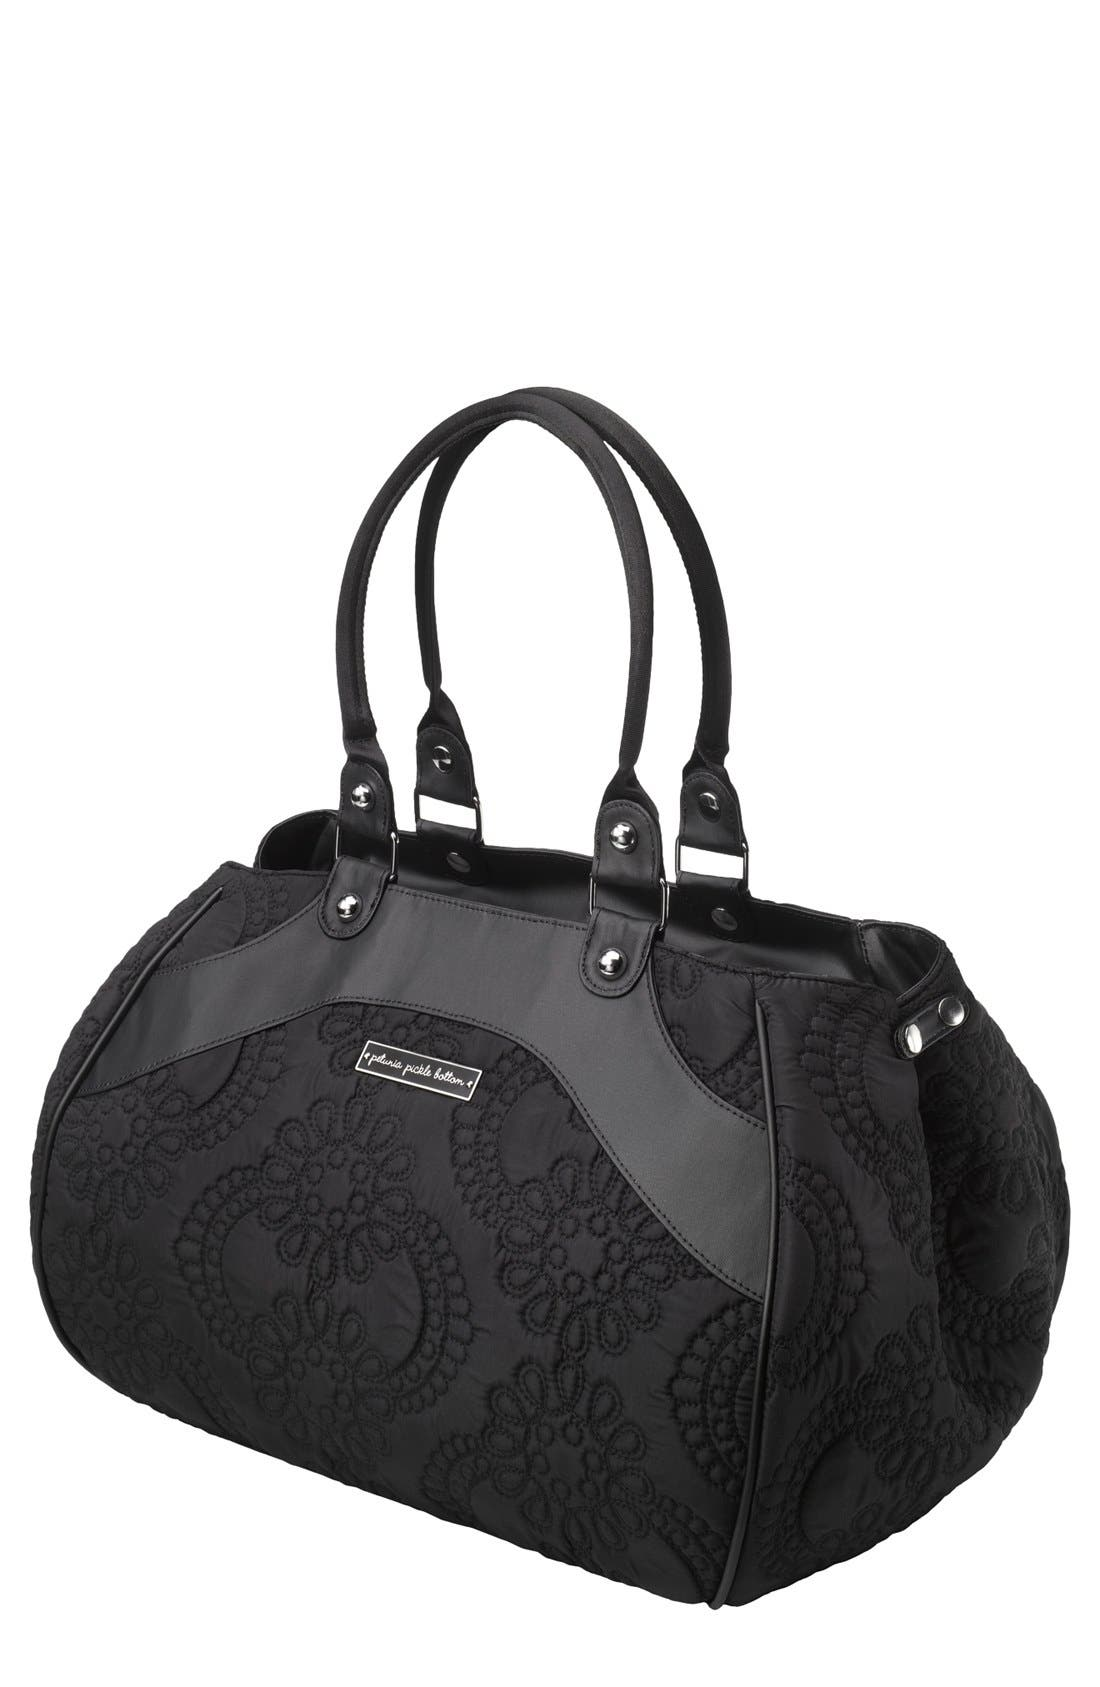 'Wistful Weekend' Embossed Diaper Bag,                             Main thumbnail 1, color,                             001